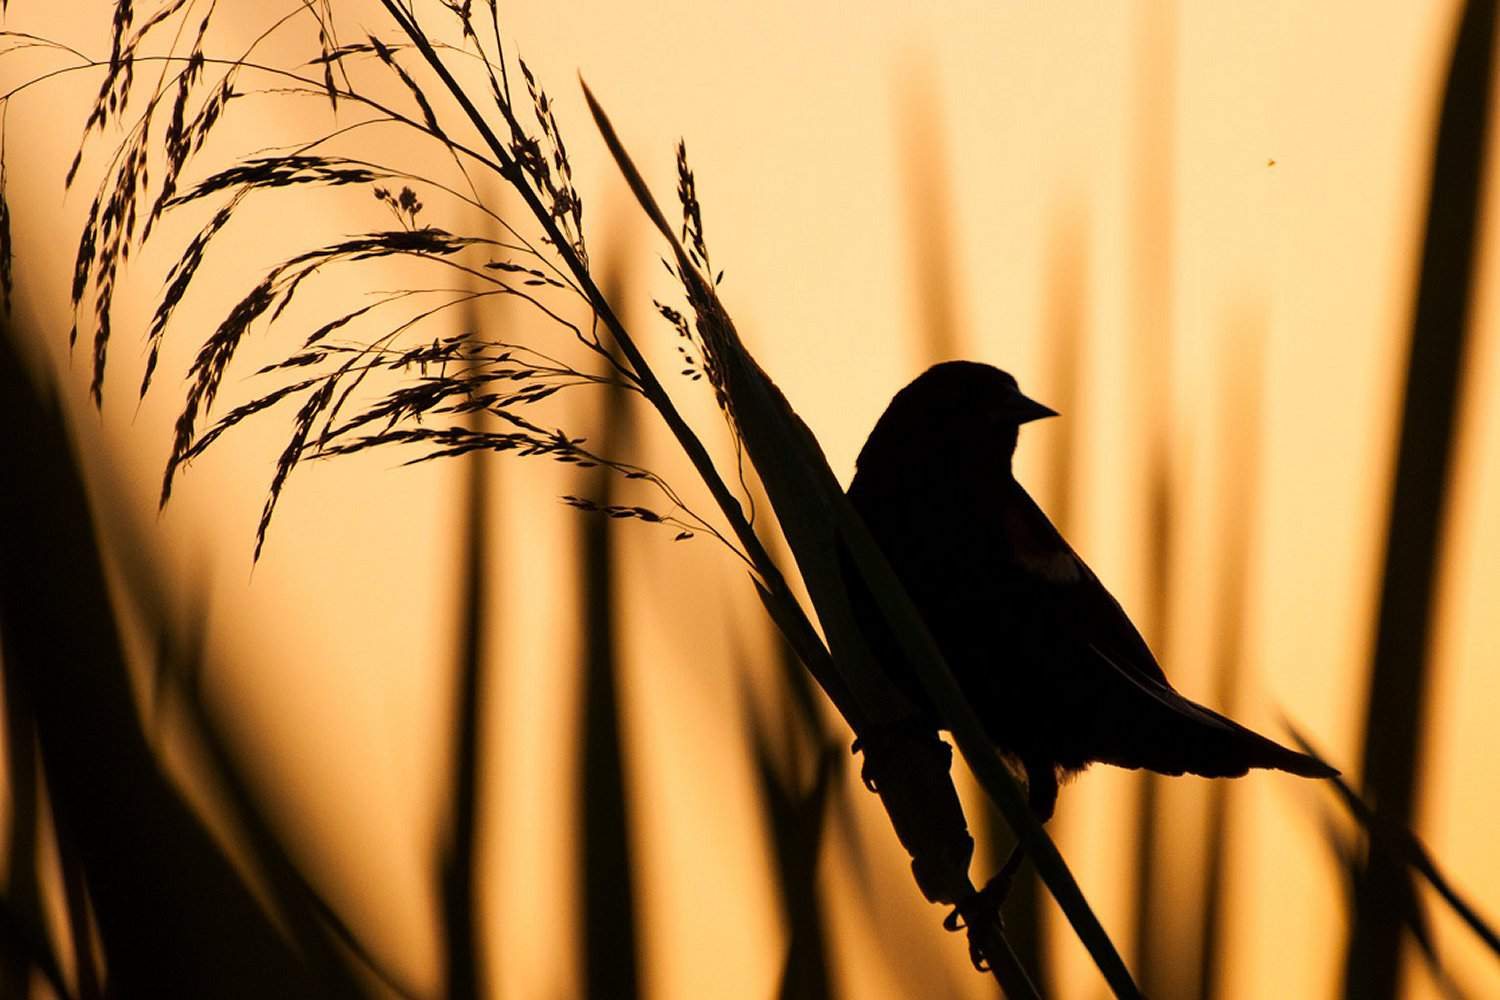 A blackbird silhouetted against a sunset